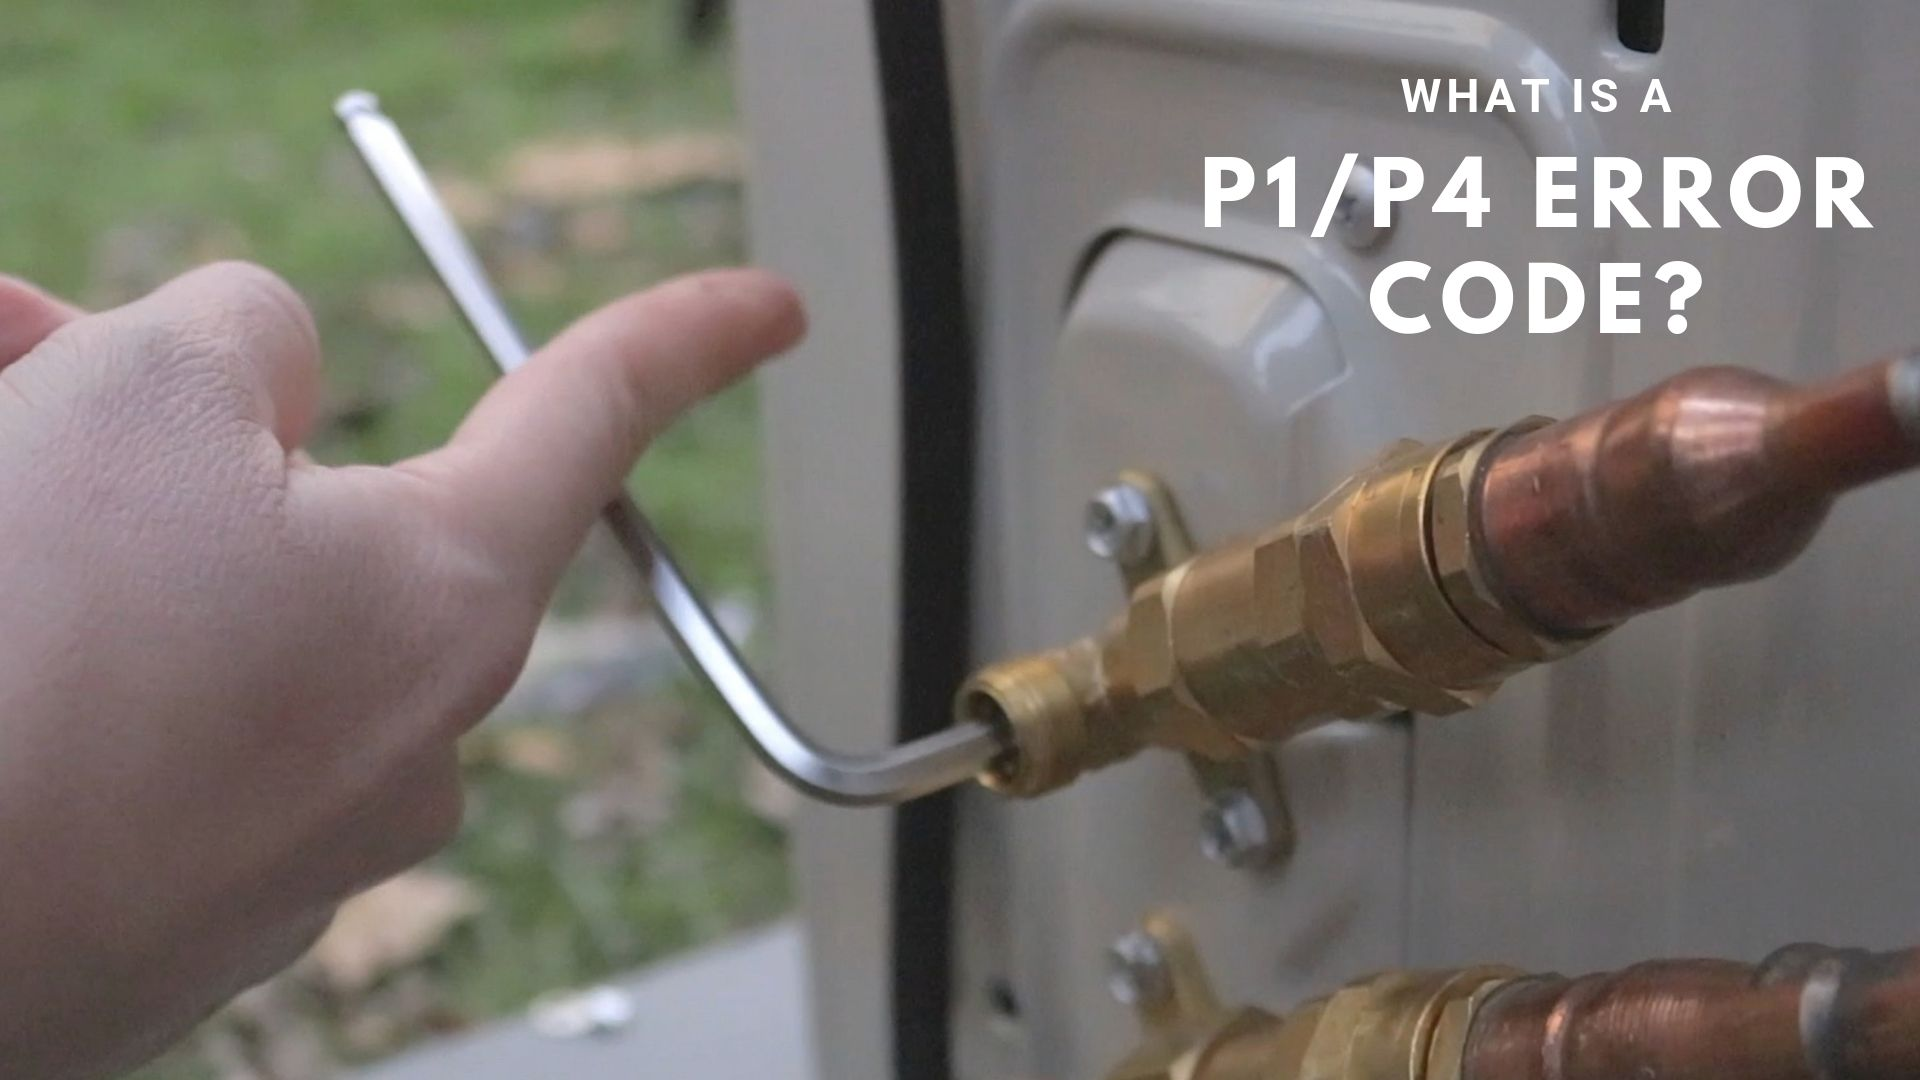 What Is A P1 Or P4 Error Code? - MRCOOL DIY Ductless Mini Split